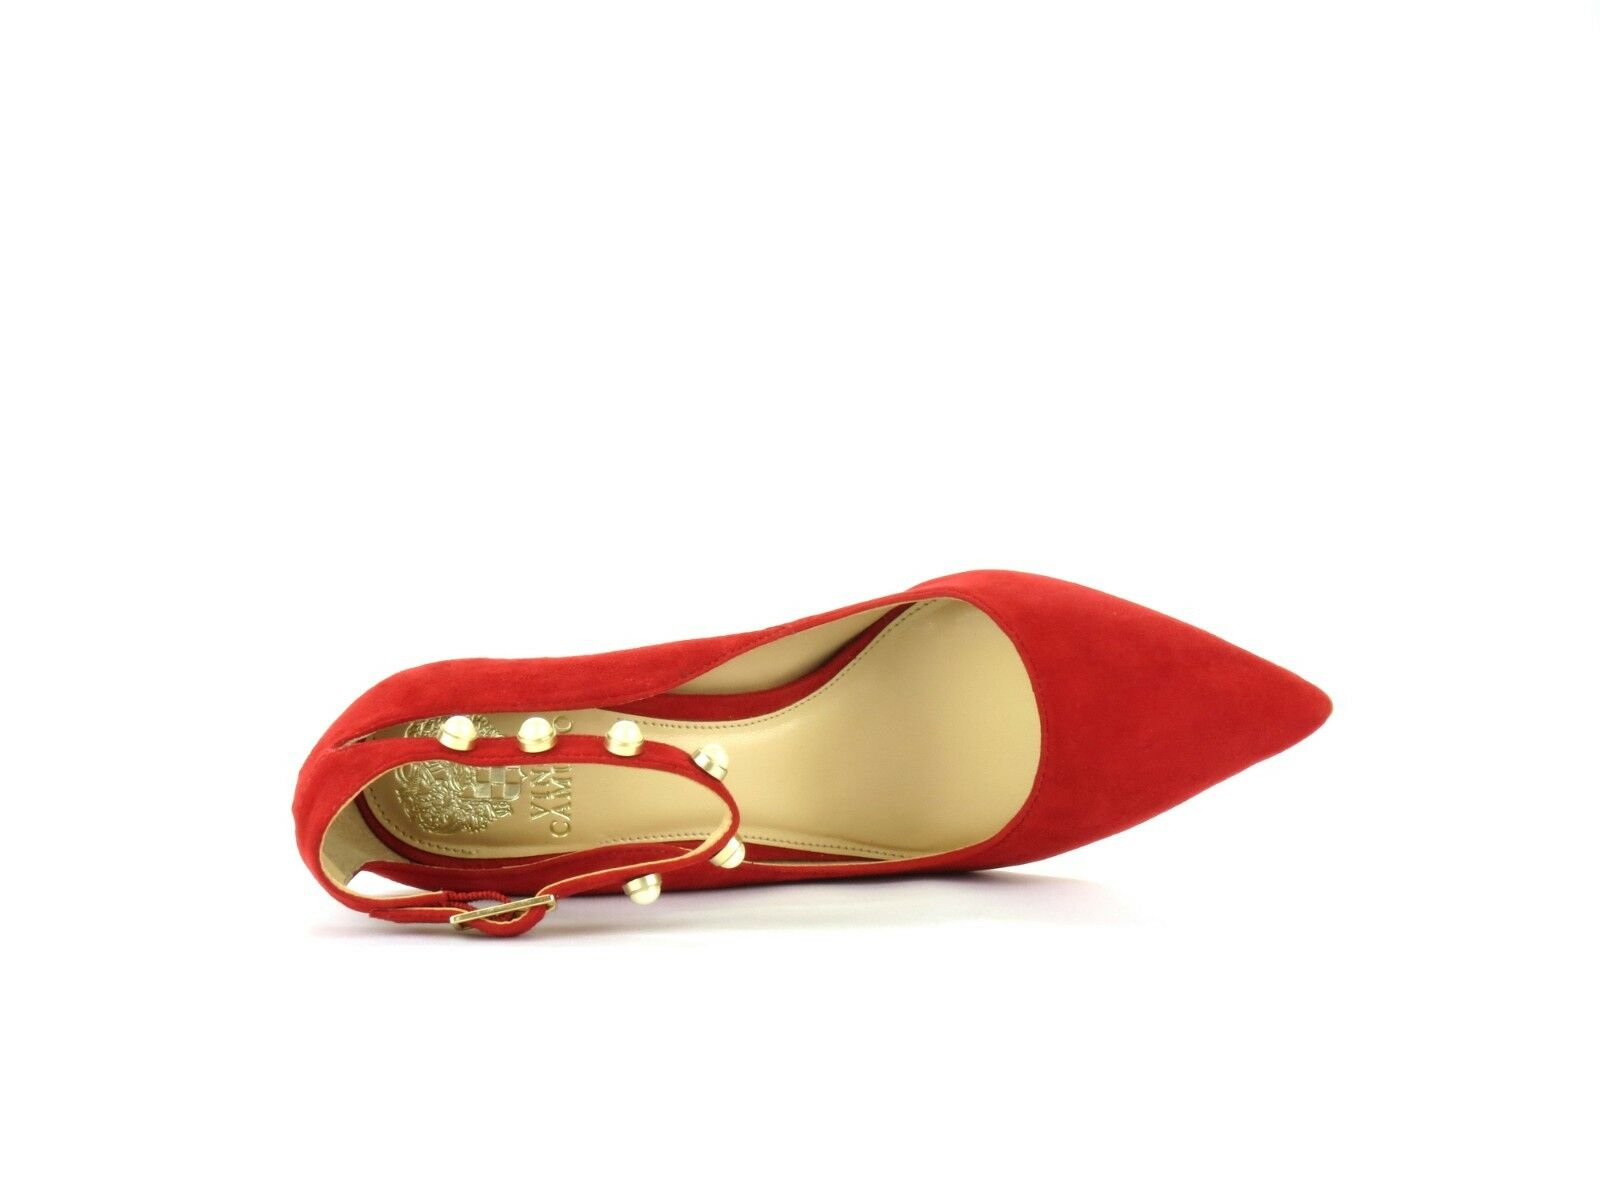 Vince Camuto Jassita Cherry ROT Suede Jeweled Pearl 8 Ankle Strap Pump Heel 8 Pearl 91e28c